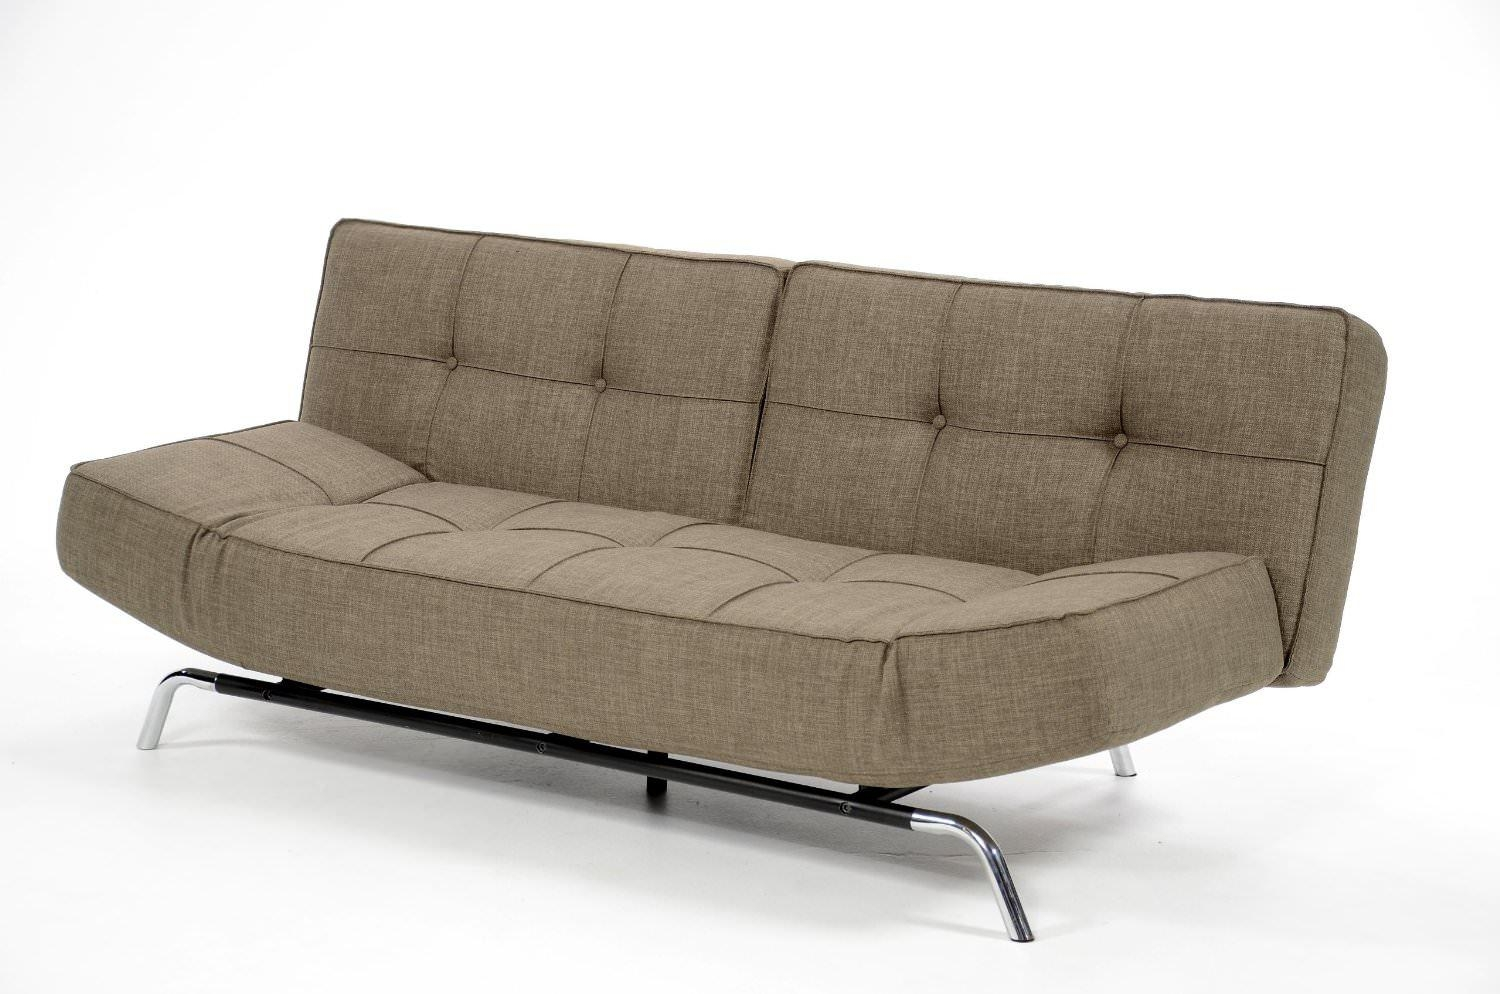 Beautiful Euro Lounger Sofa Bed 81 For Your Carlyle Sofa Beds With Regarding Euro Lounger Sofa Beds (View 14 of 20)